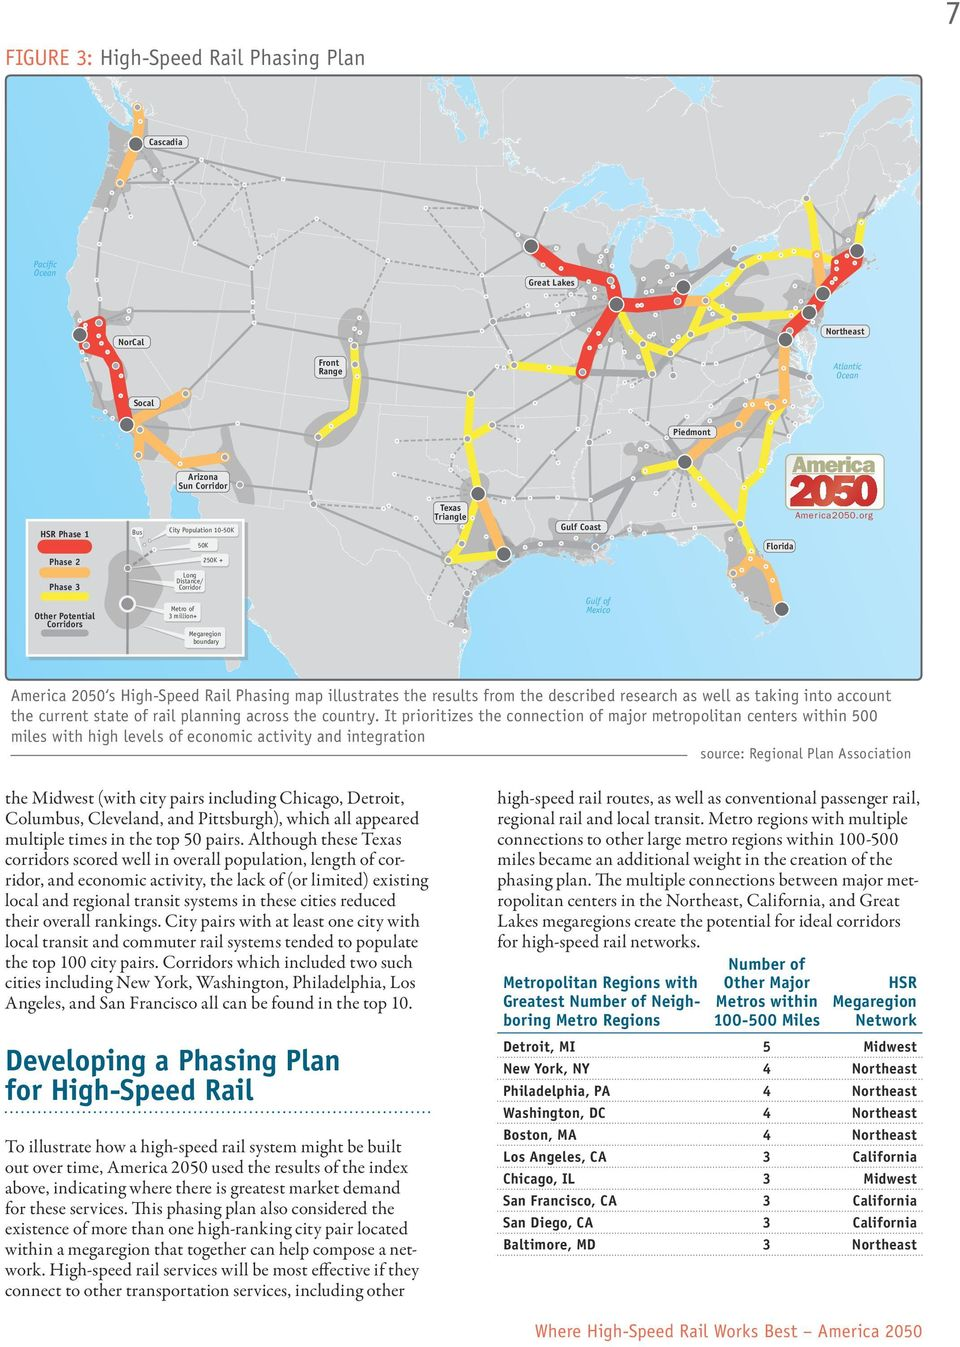 org Gulf Coast Florida 50K Phase 2 Phase 3 Other Potential Corridors 250K + Long Distance/ Corridor Metro of 3 million+ Gulf of Mexico Megaregion boundary America 2050 s High-Speed Rail Phasing map